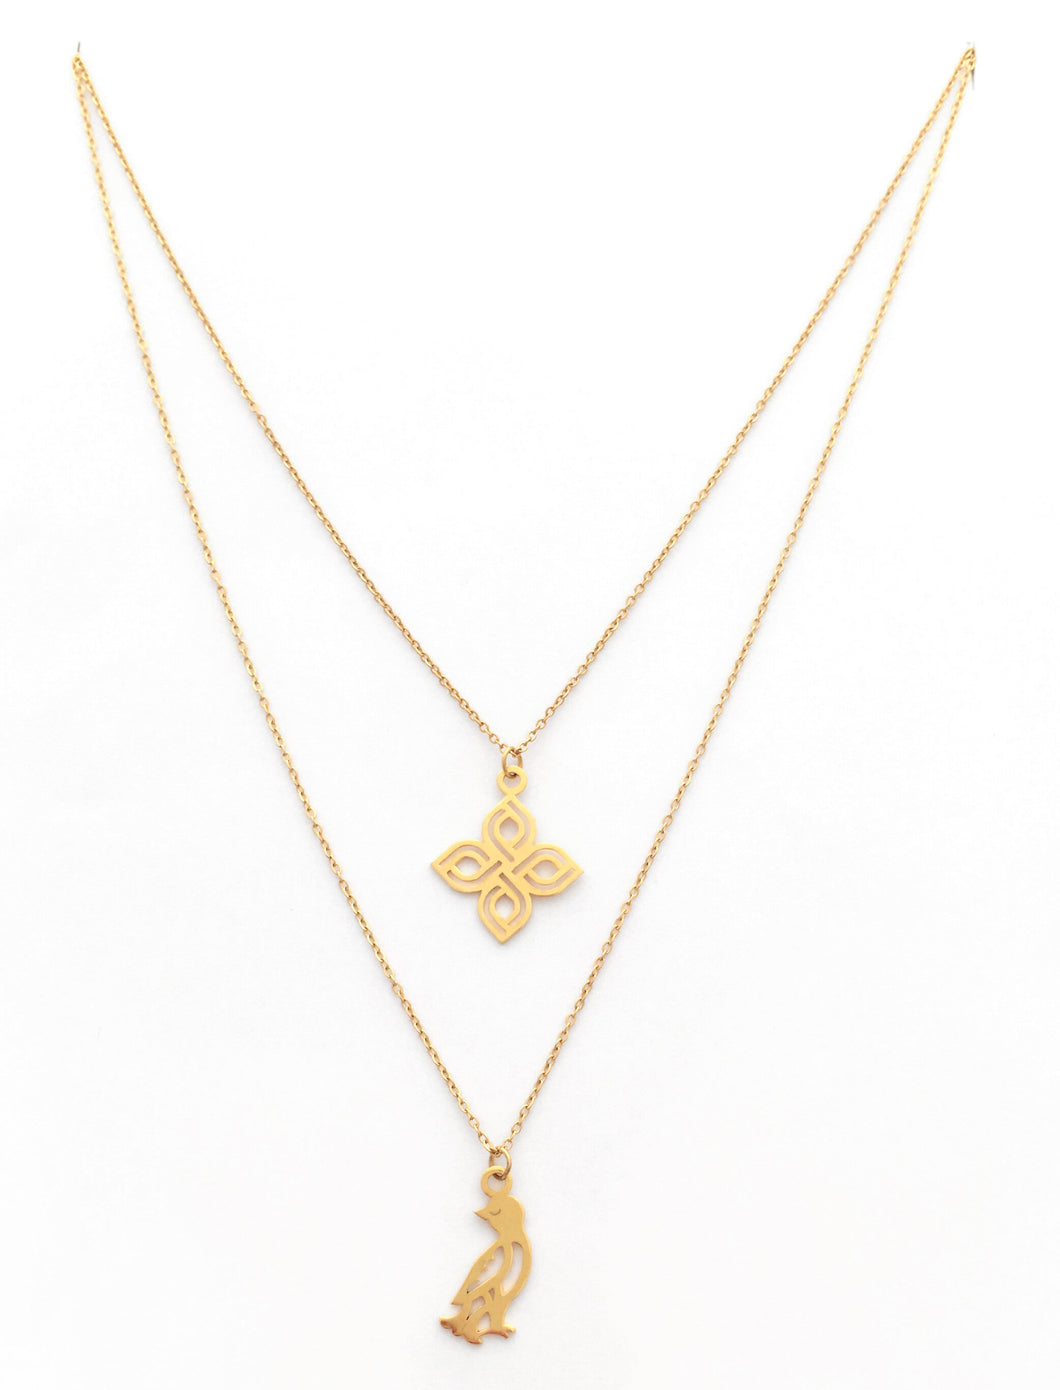 Narinee Gakavig Duo Double Necklace - Gold